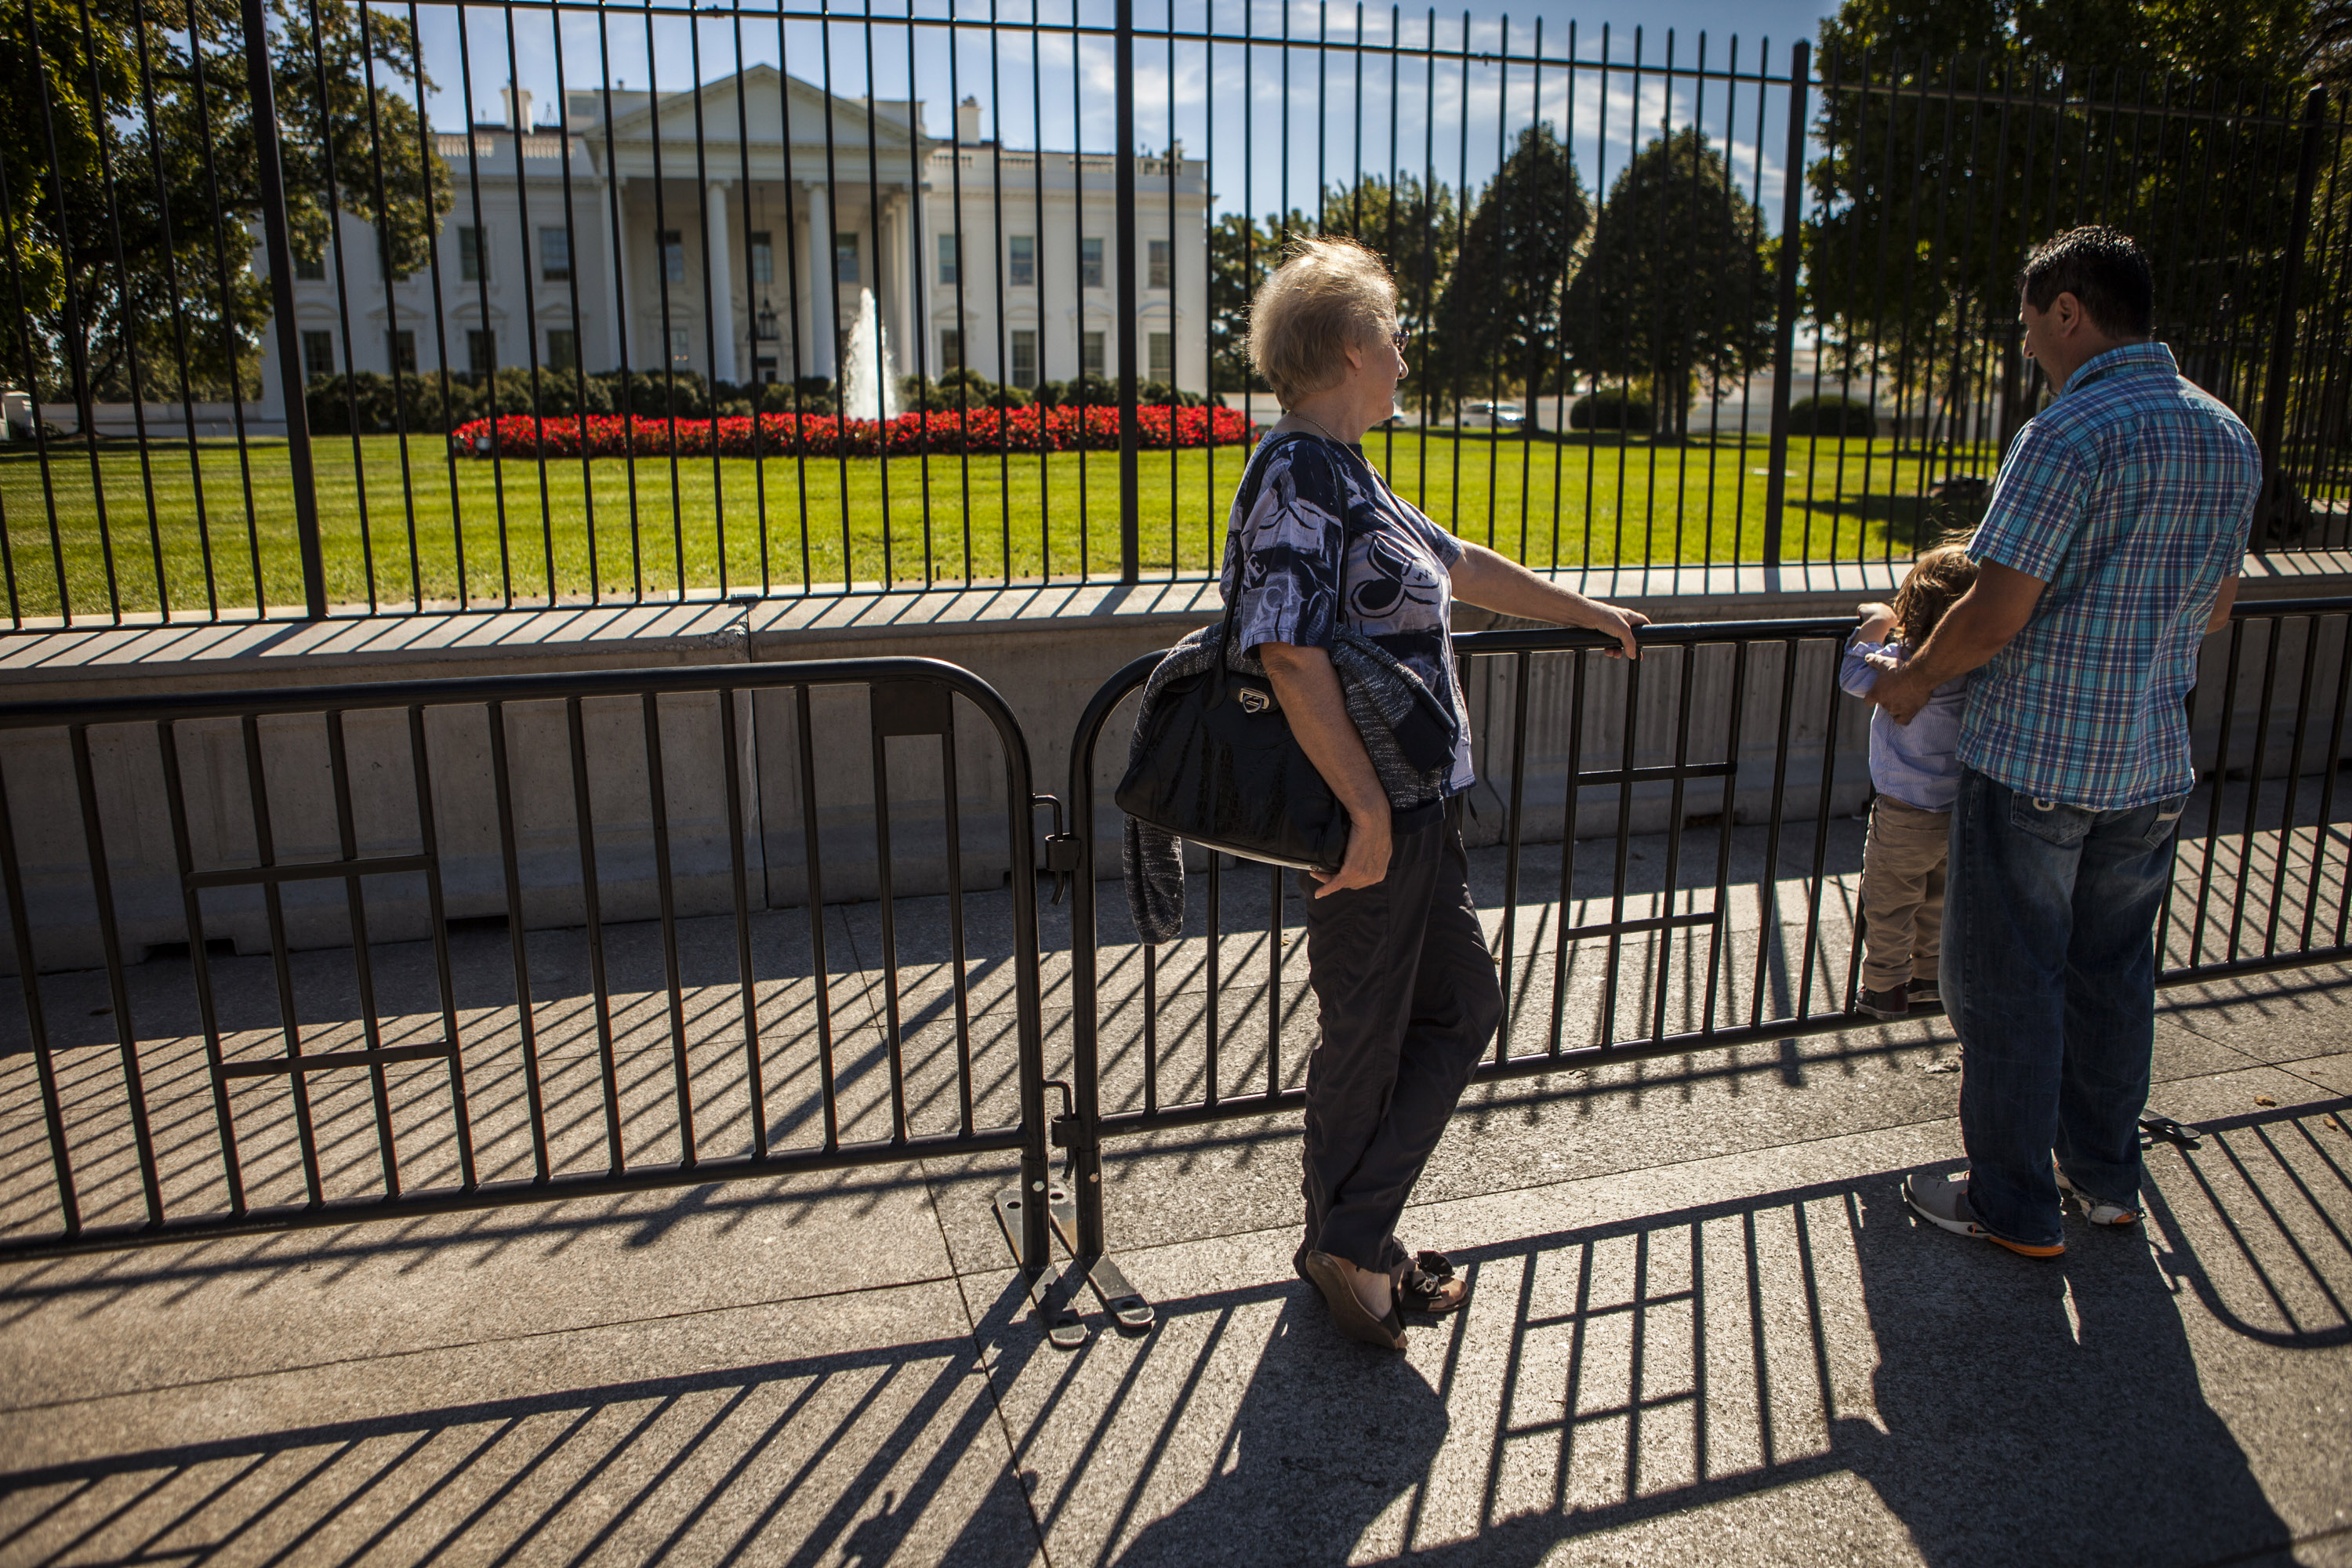 Tourists stand near the barricade that keeping visitors away from the fence outside The White House after the homeless 42-year-old man Omar Gonzales jumped the White House fence on Friday, in Washington D.C., United States on 22 September 2014.